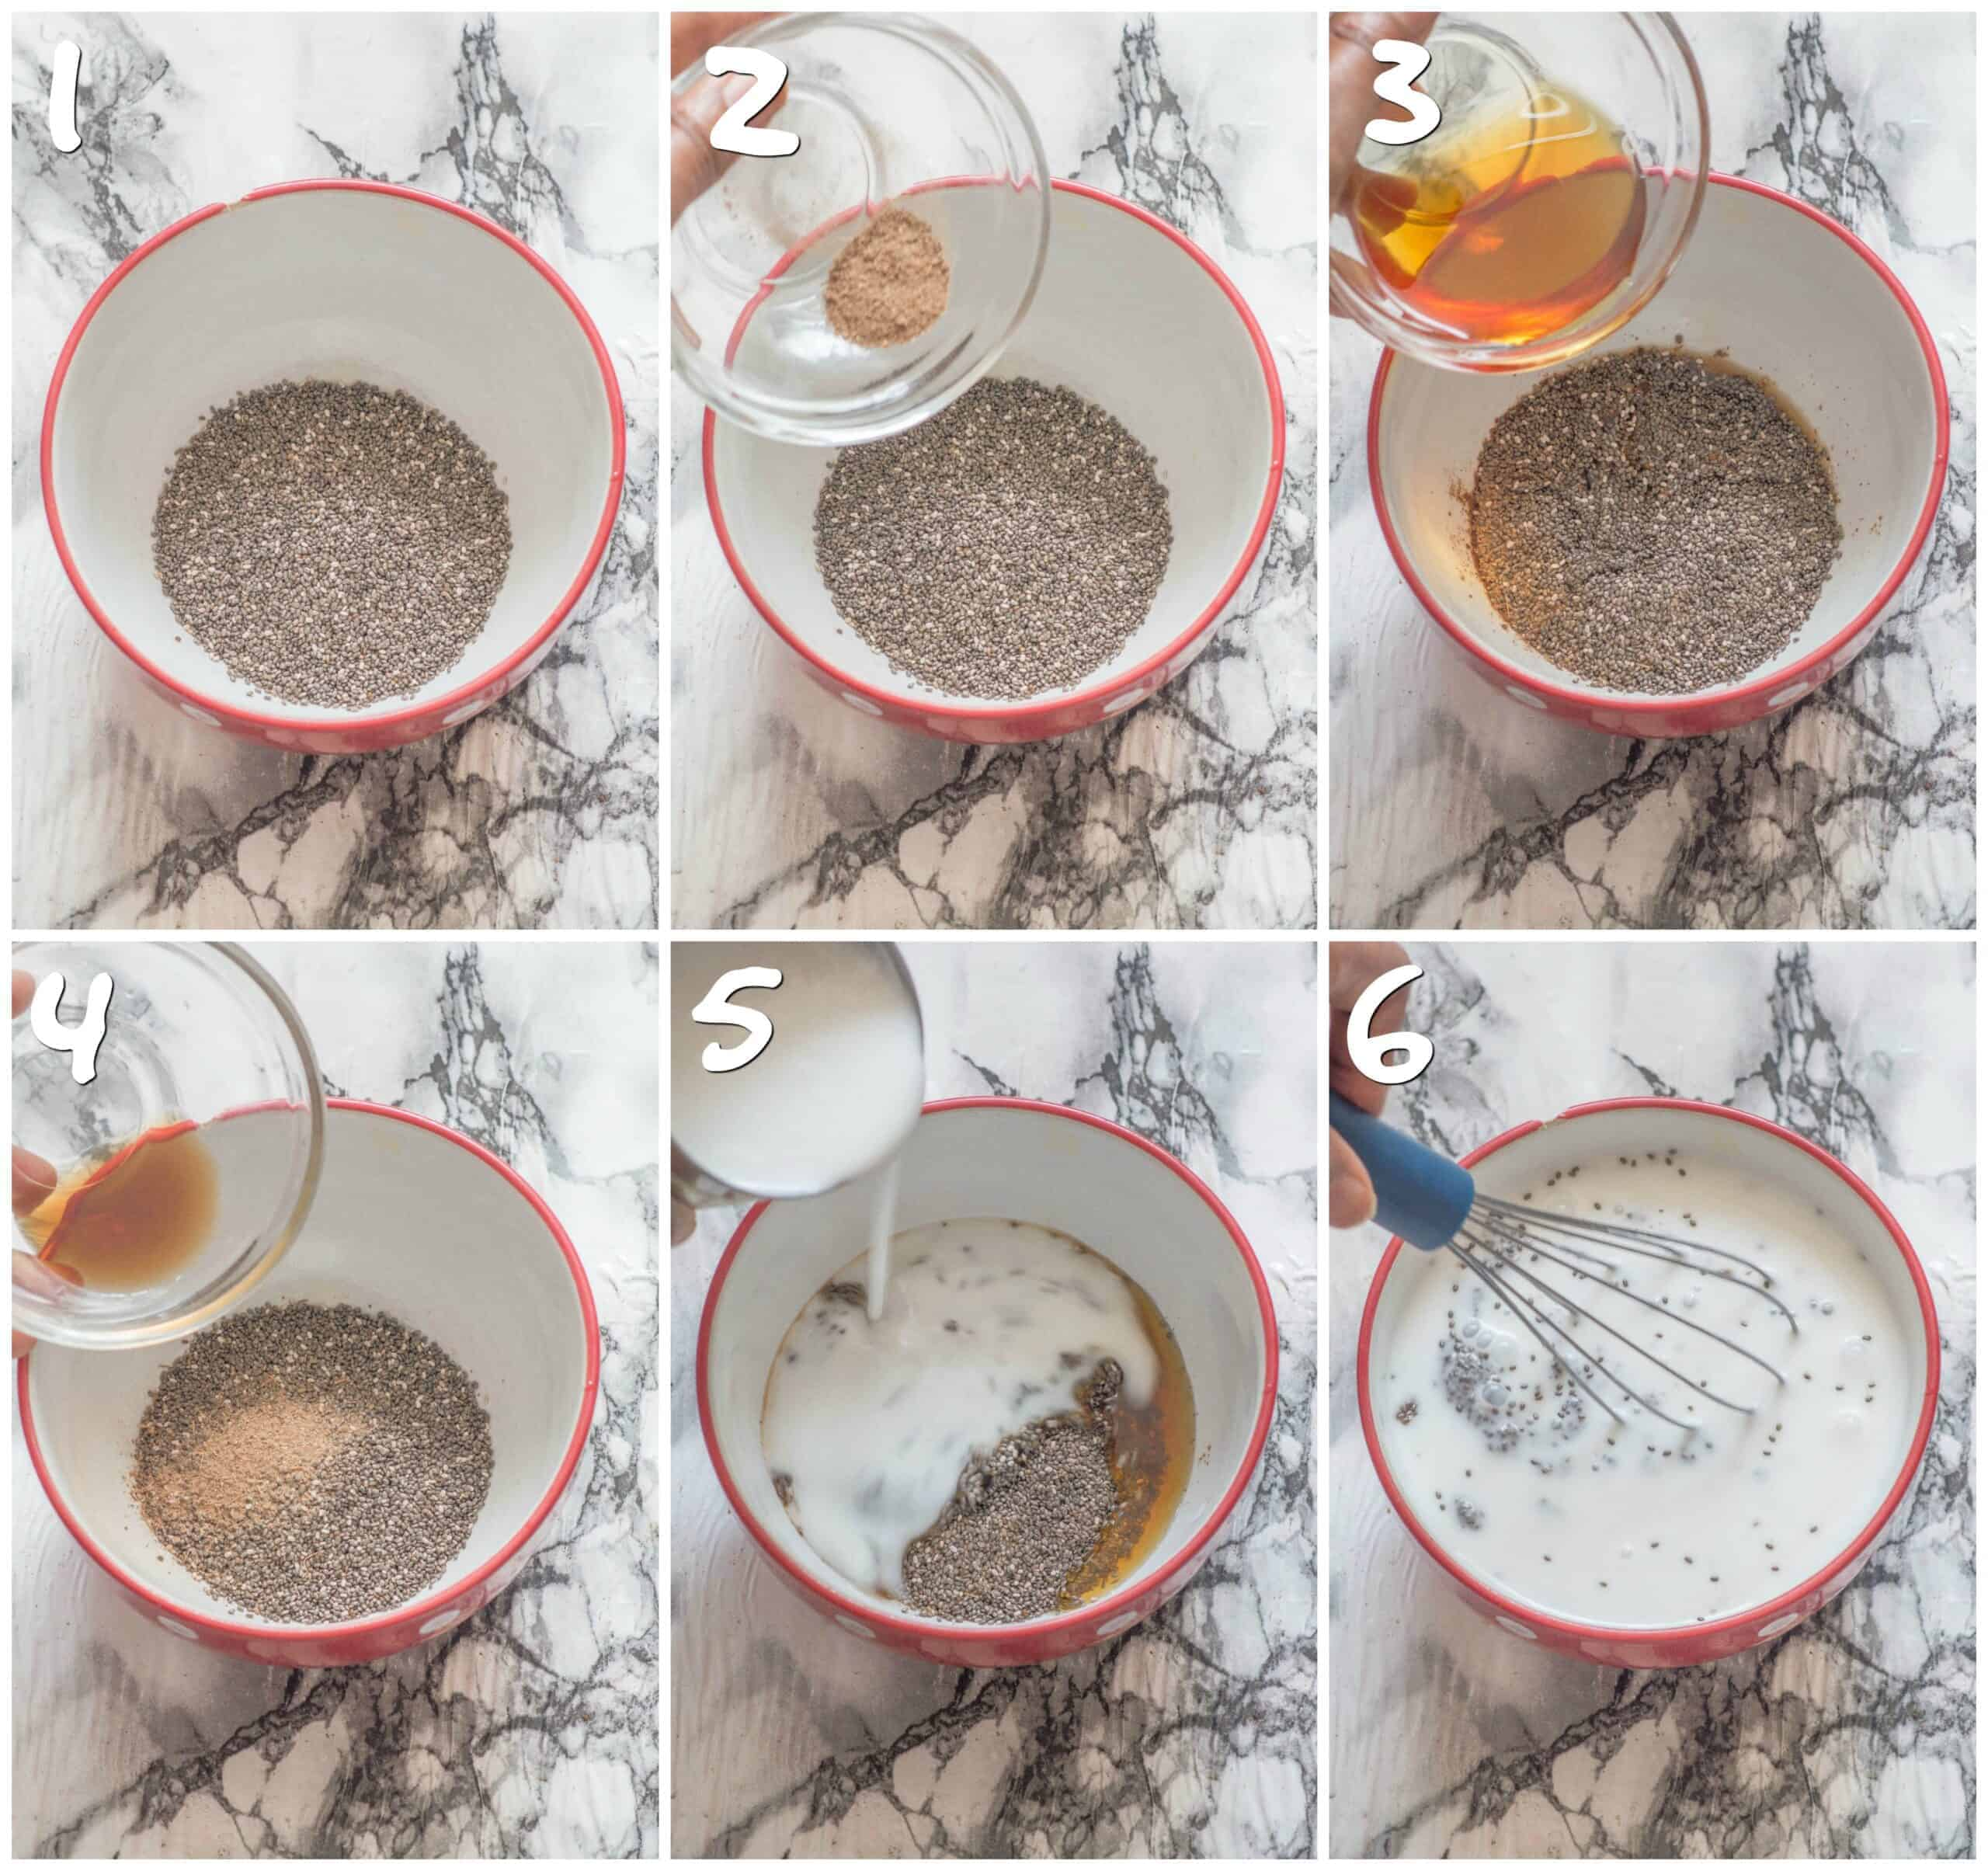 steps 1-6 making the chia pudding